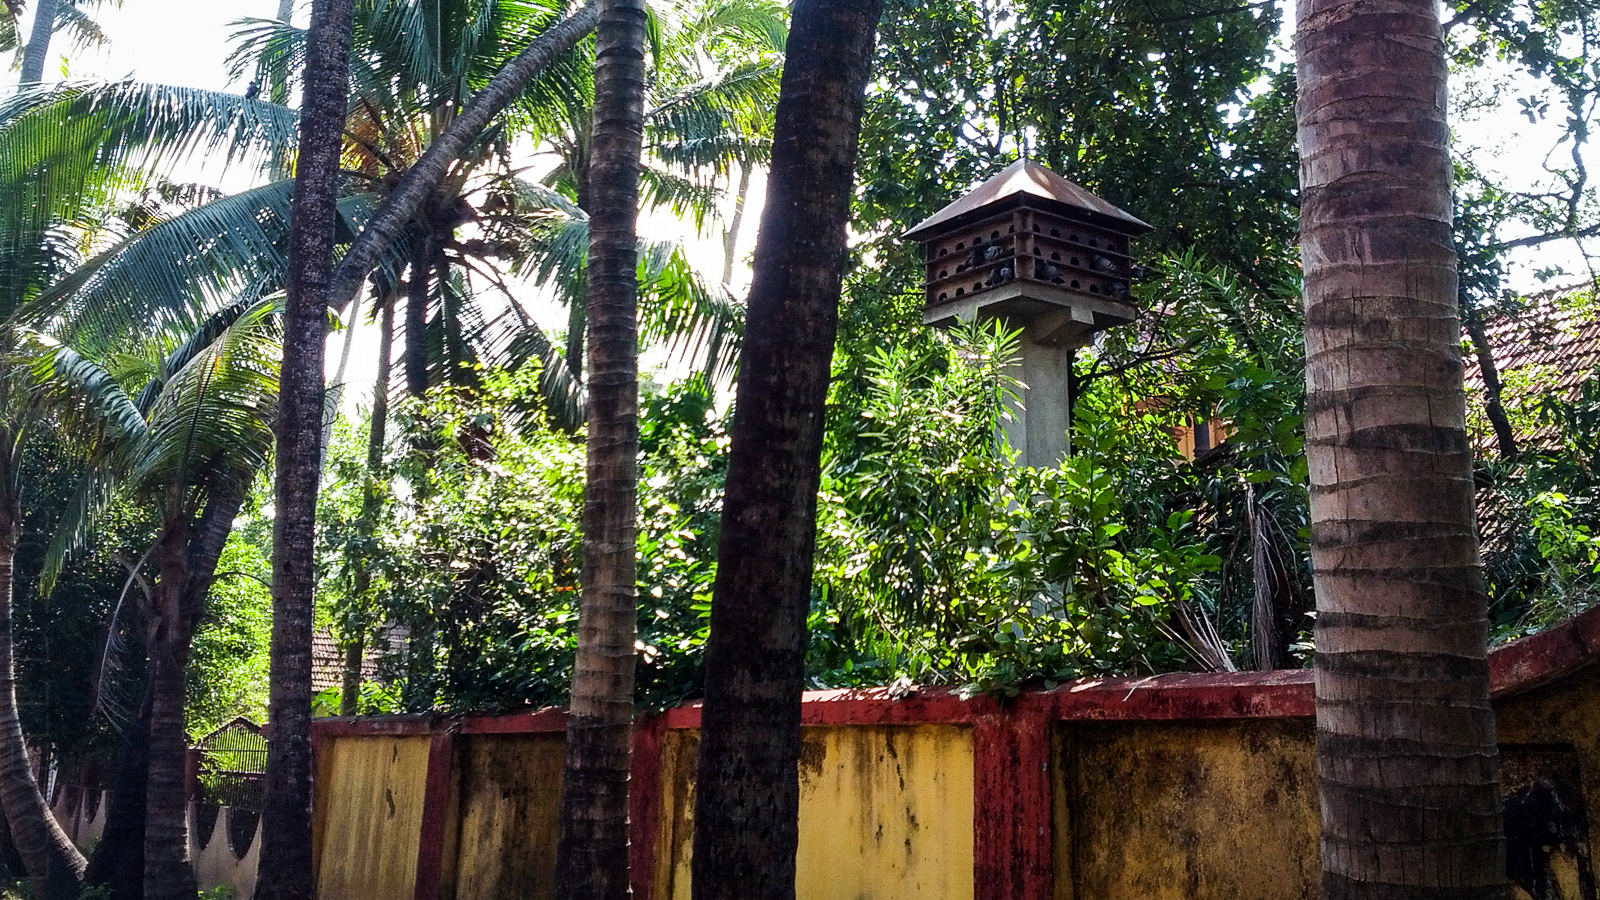 Bird house at the Thirumala Devaswom Temple Complex